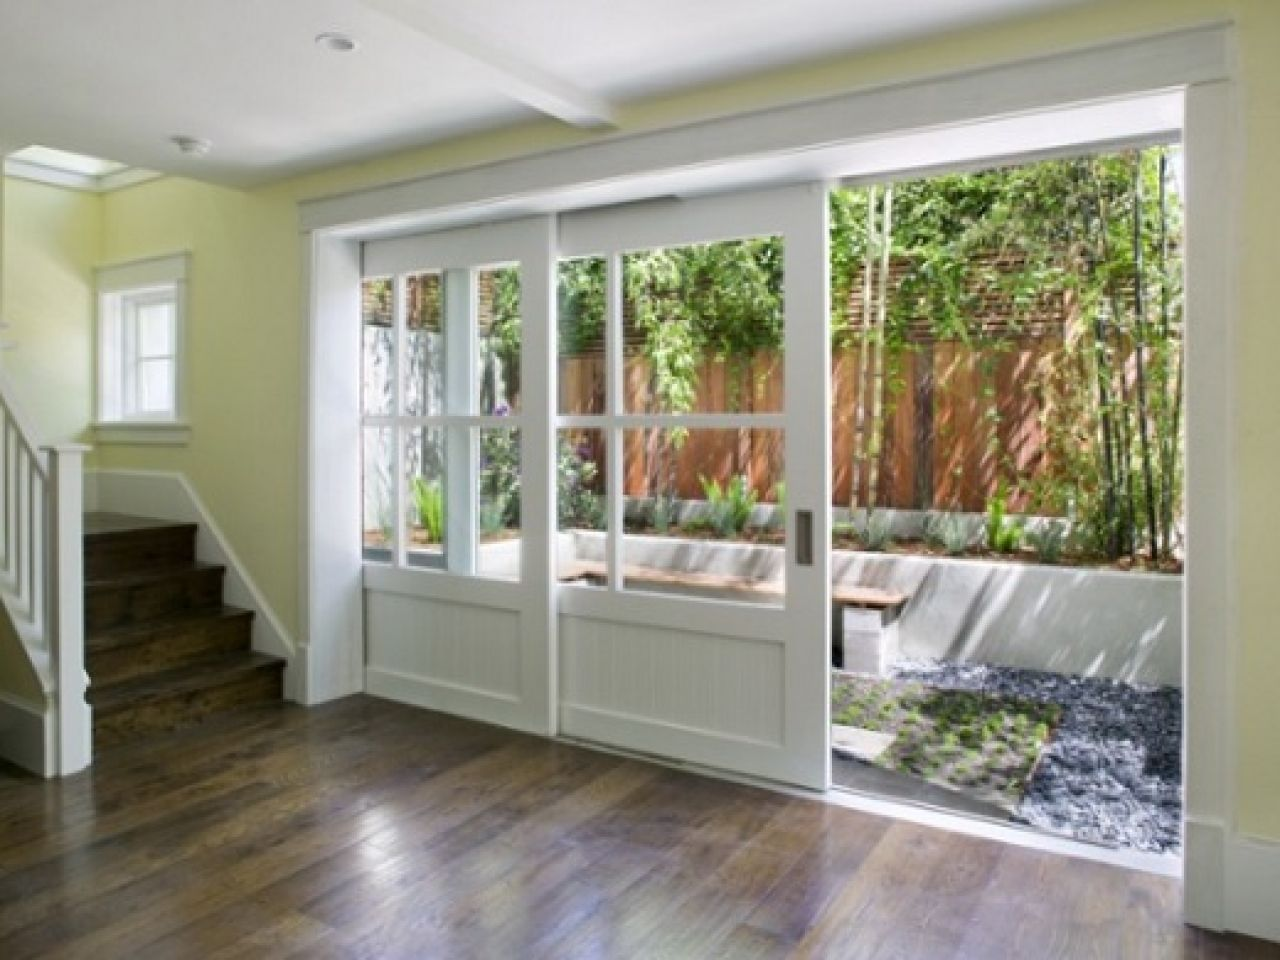 Sliding Doors Allow Light More Natural Than Other Types Of Doors